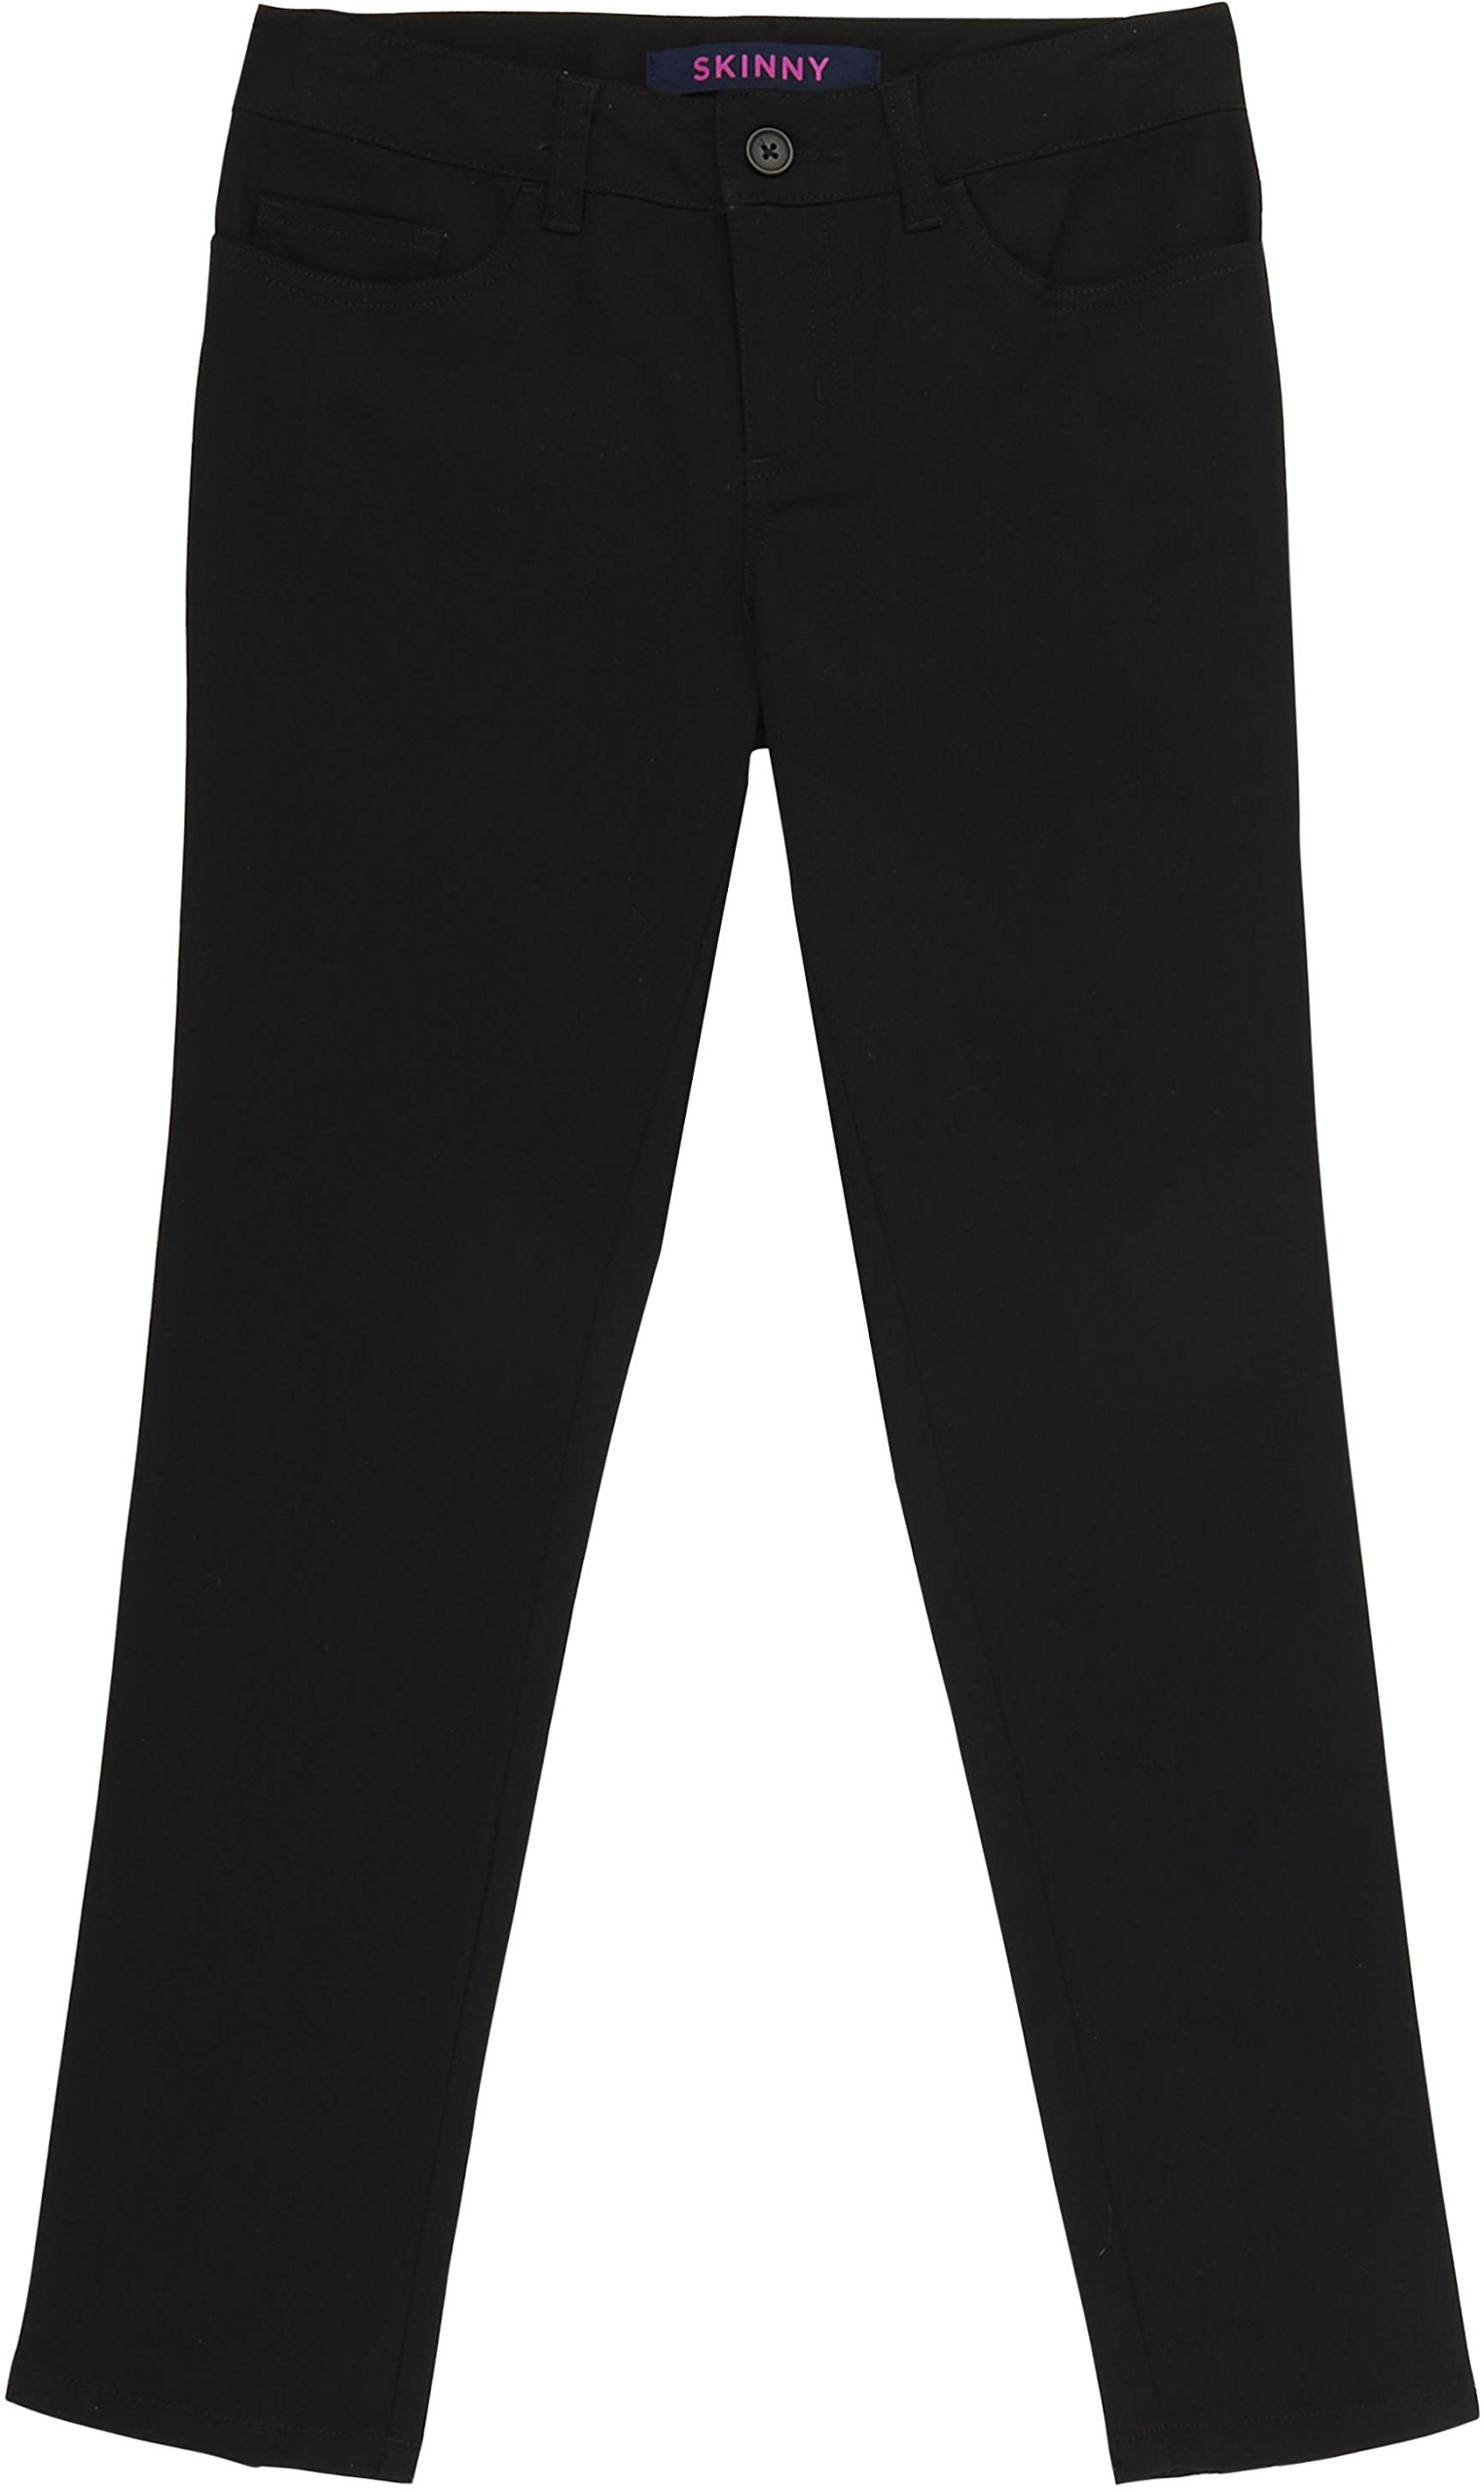 French Toast School Uniform Girls Skinny FIT 5-Pocket Pants, Black, 4T by French Toast